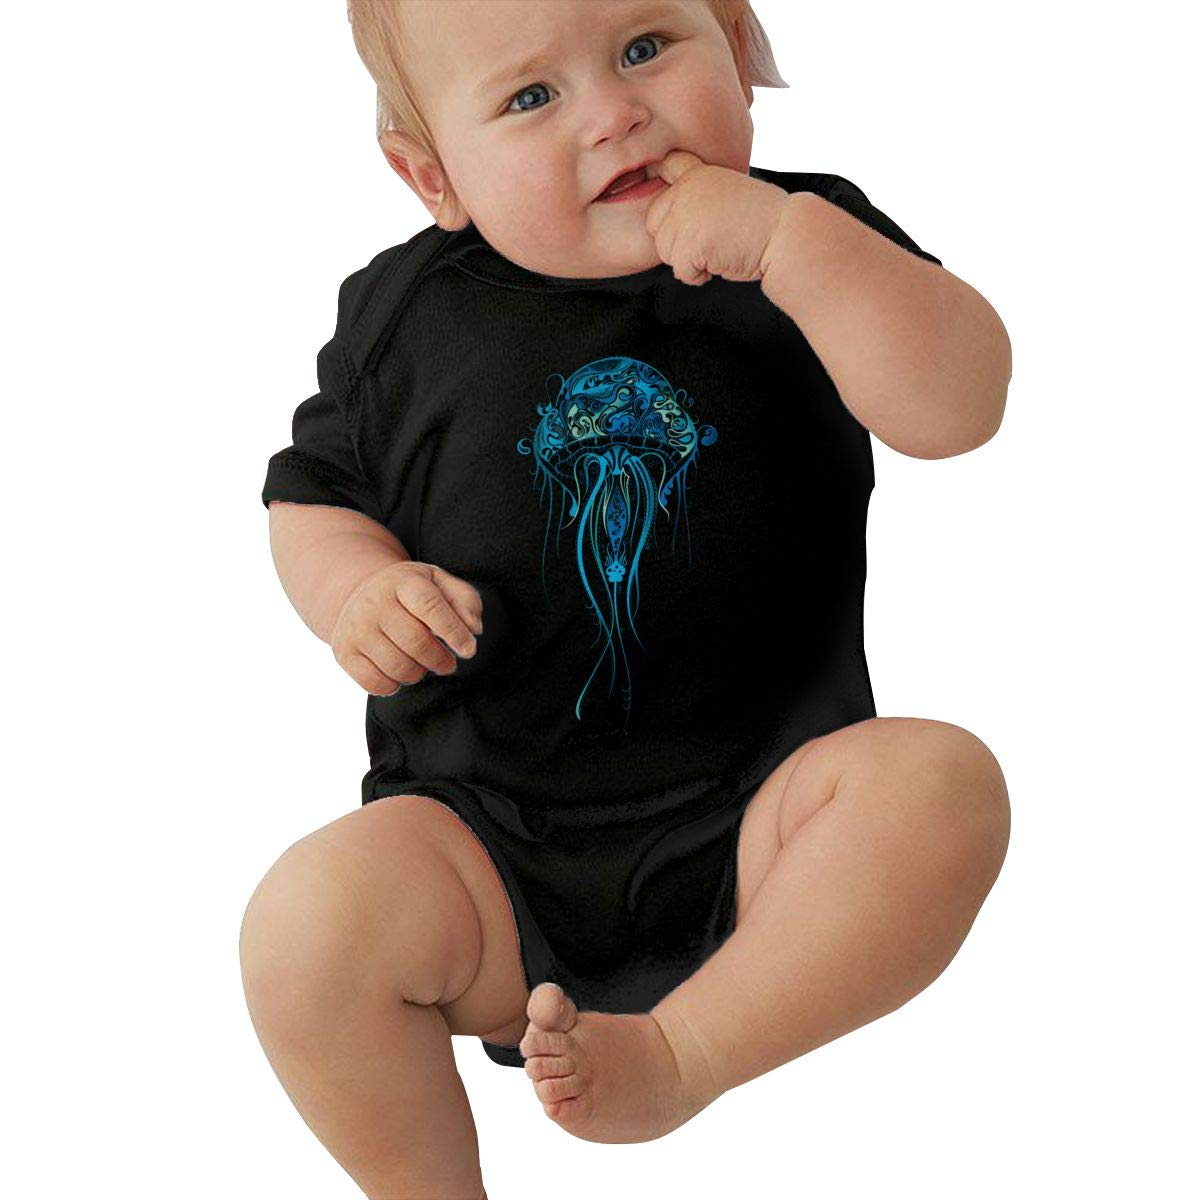 Dfenere Blue Jellyfish Graphic Newborn Baby Short Sleeve Bodysuit Romper Infant Summer Clothing Black